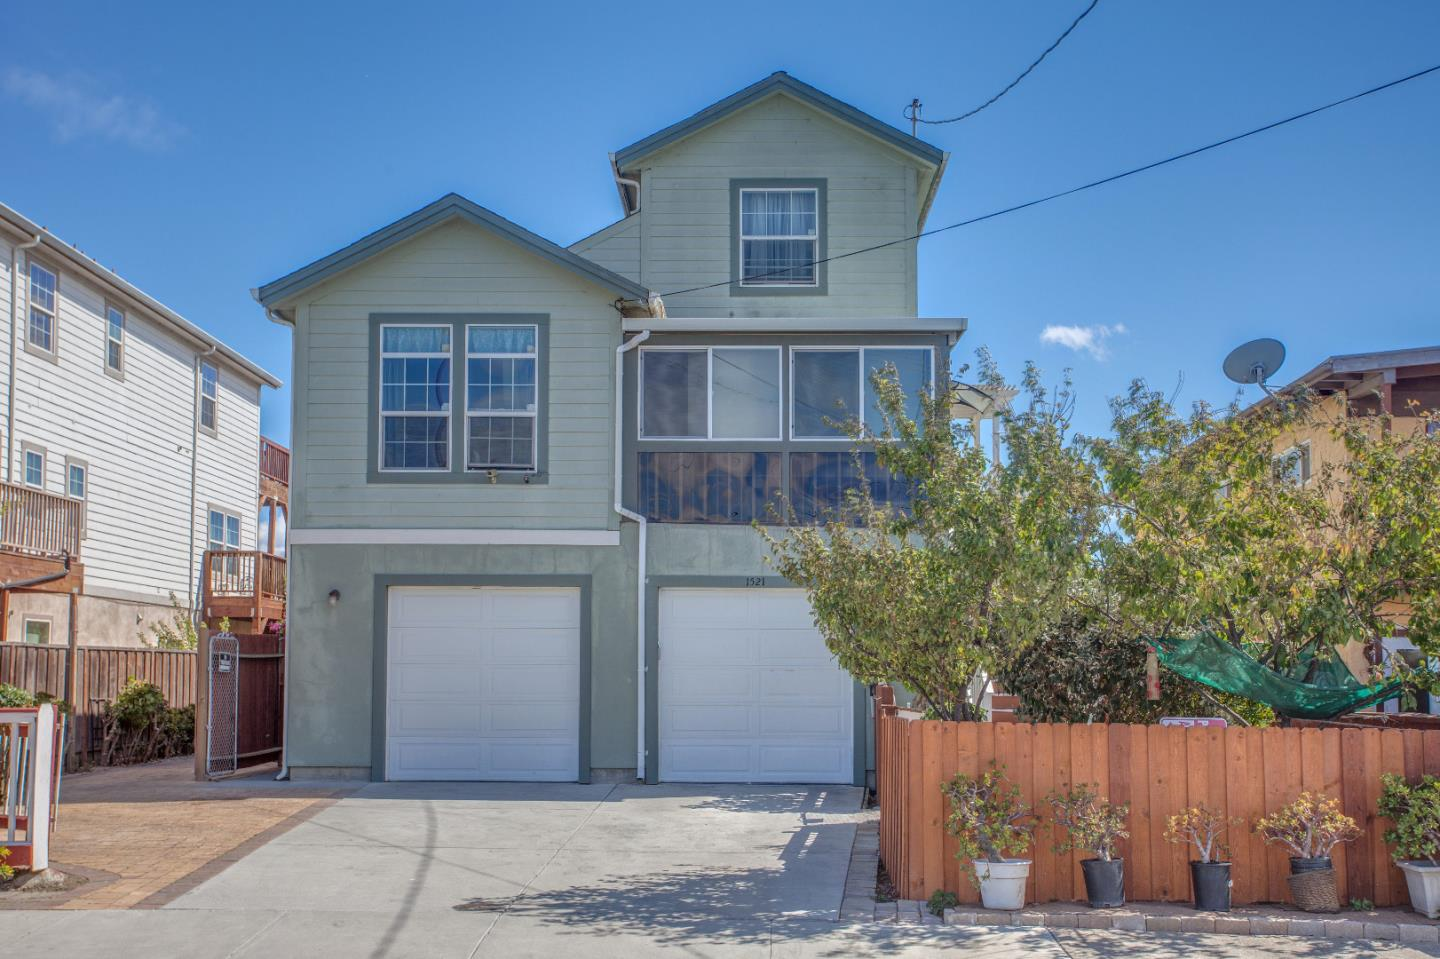 Single Family Home for Sale at 1521 State Street 1521 State Street Alviso, California 95002 United States